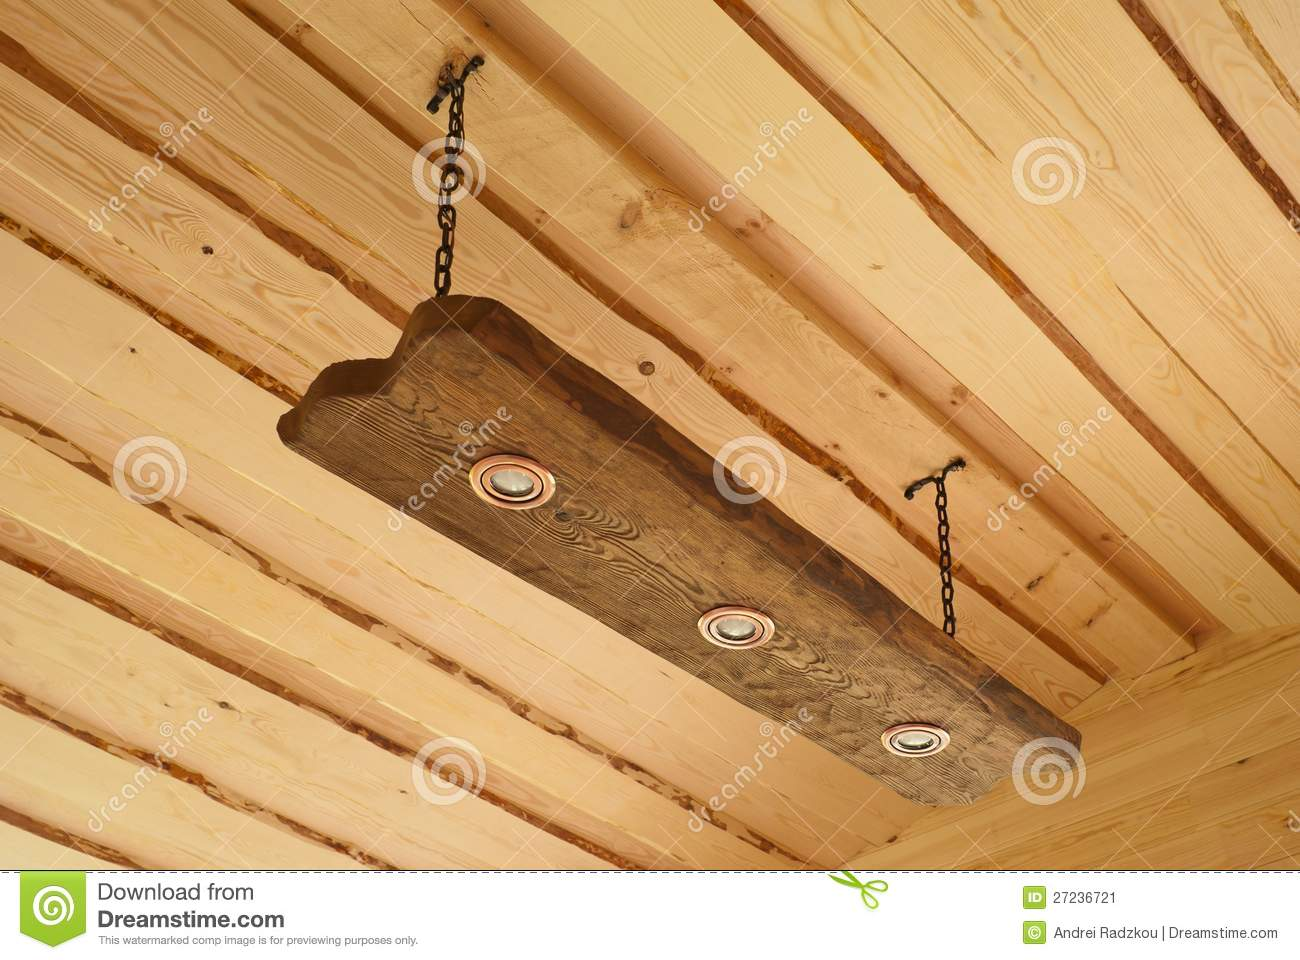 Kitchen Light Fixtures Led Lampe En Bois De Plafond Image Stock Image 27236721